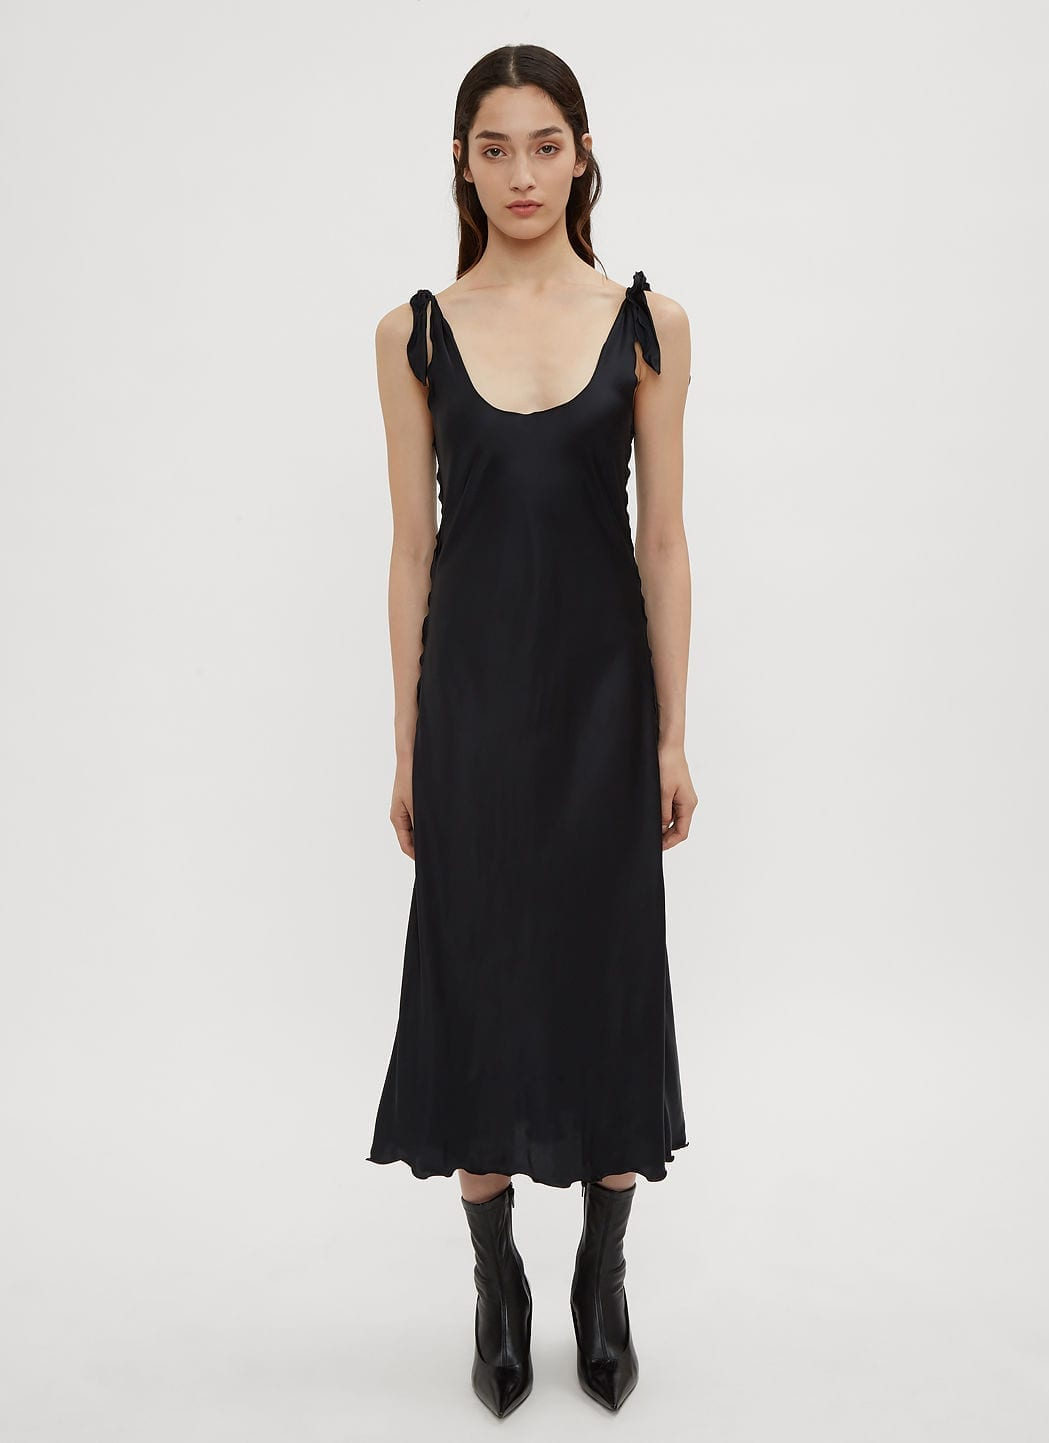 Acne Studios Bias Cut Slip Navy Dress